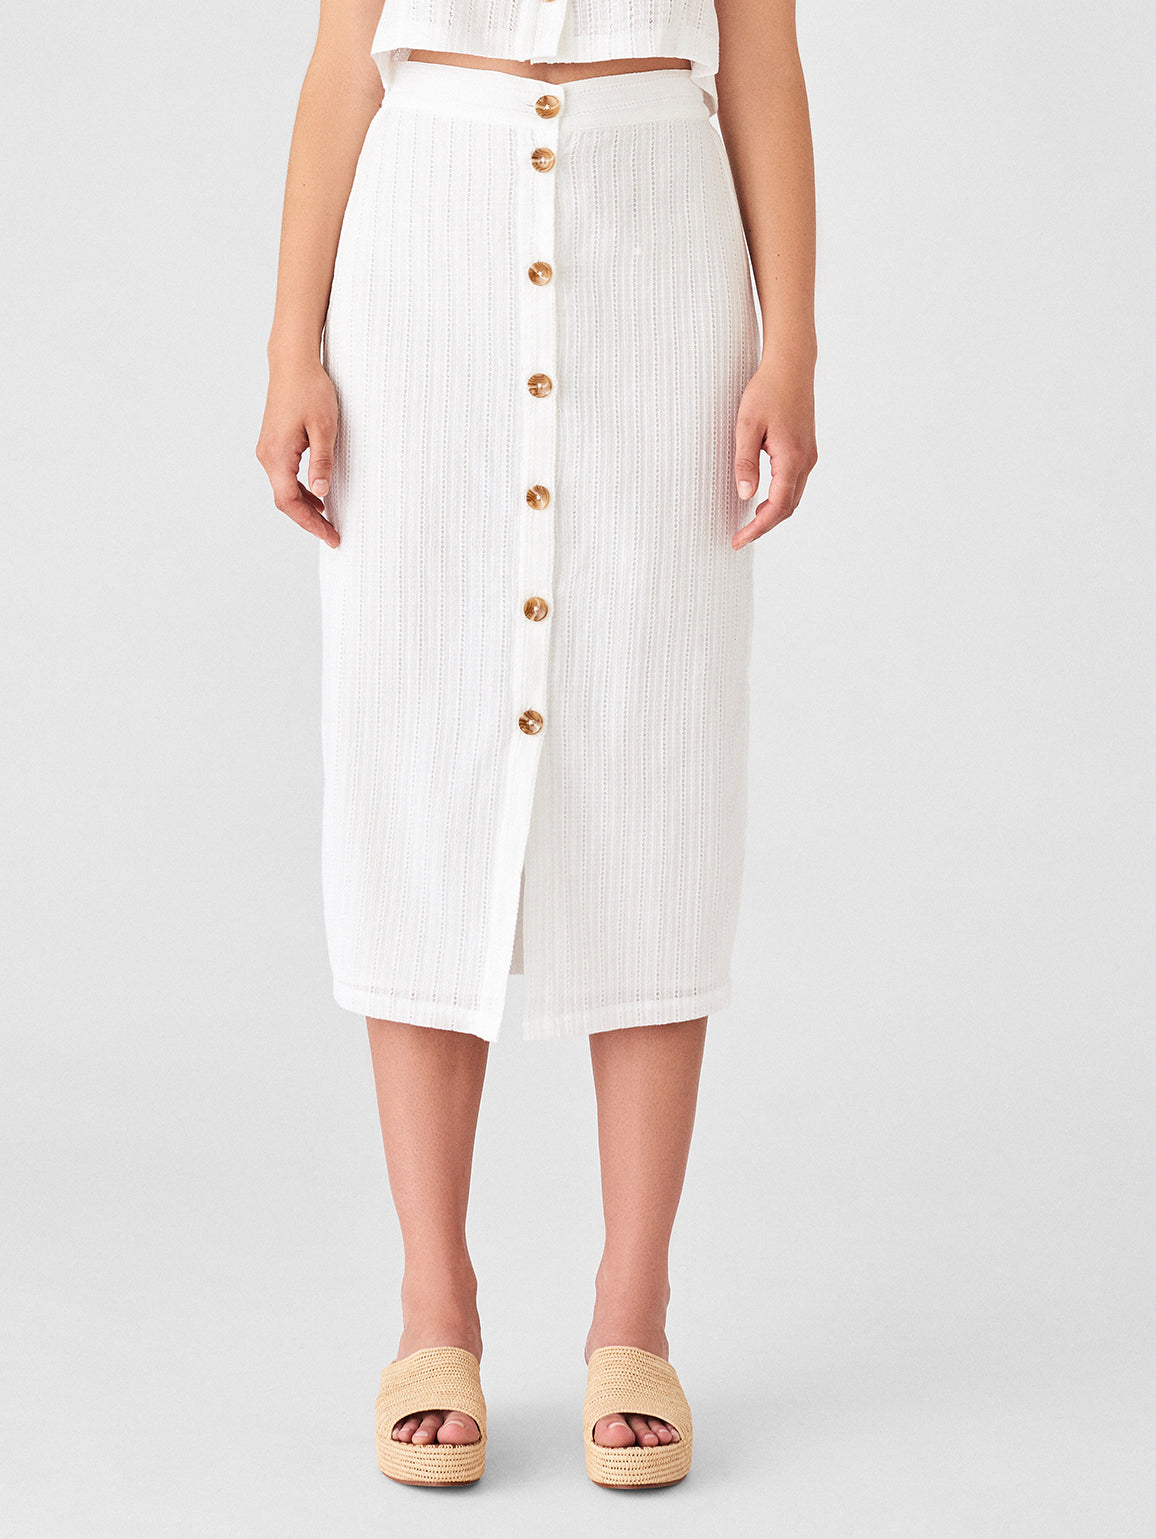 High St Skirt | White Eyelet